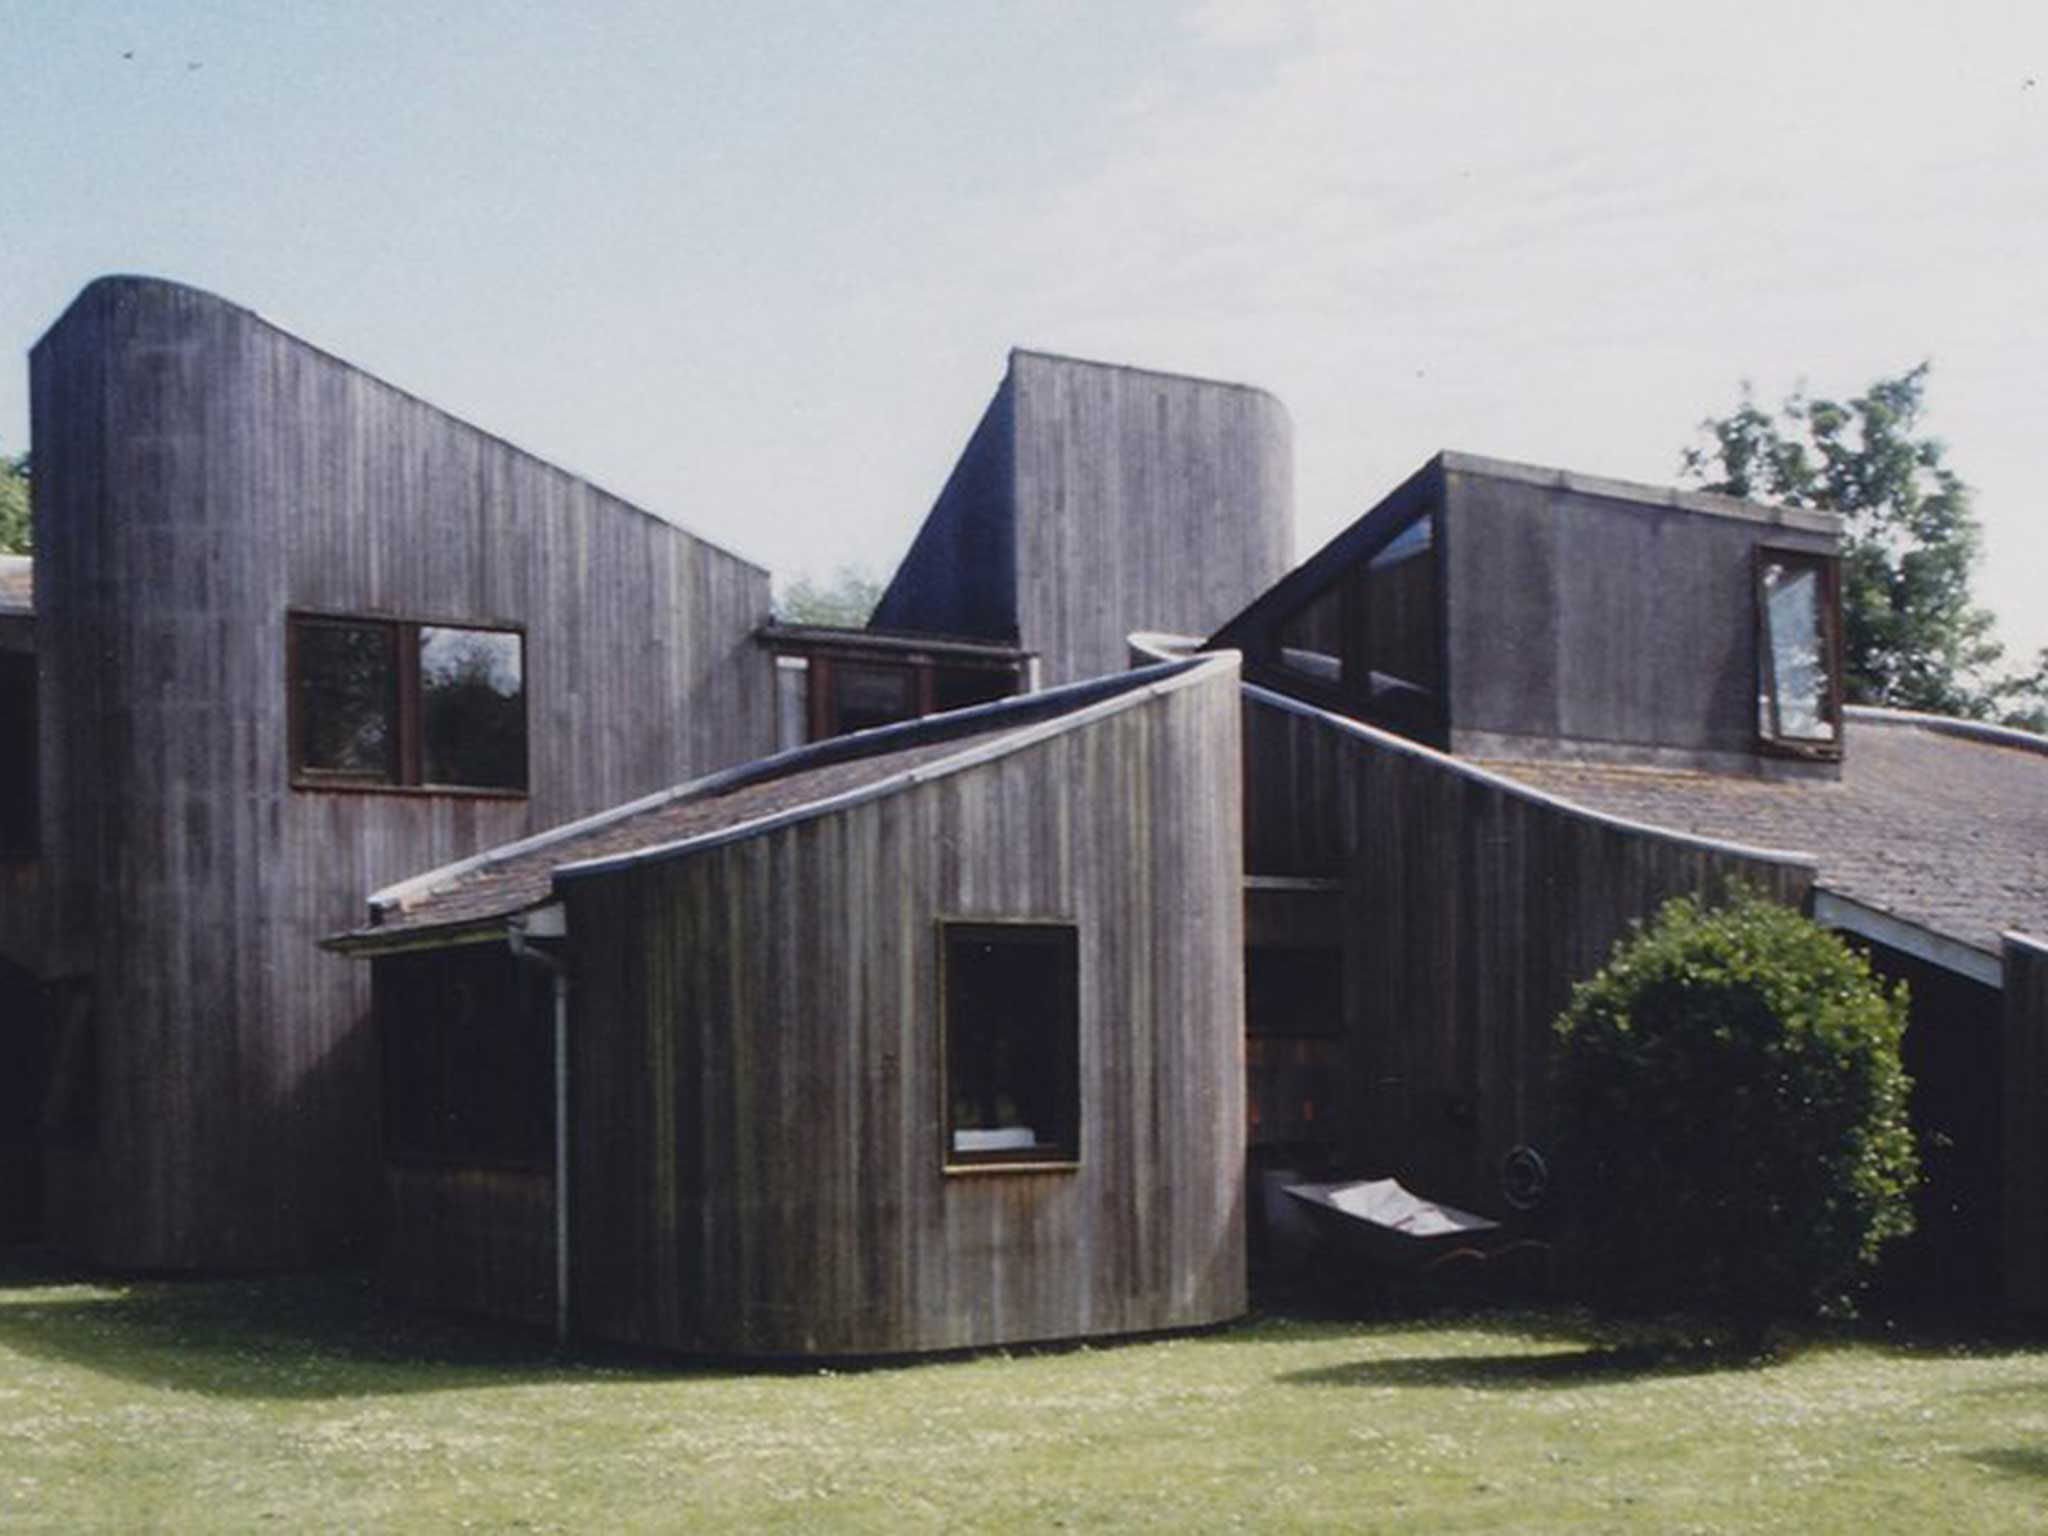 The hard stuff: Why concrete is still best for stunning